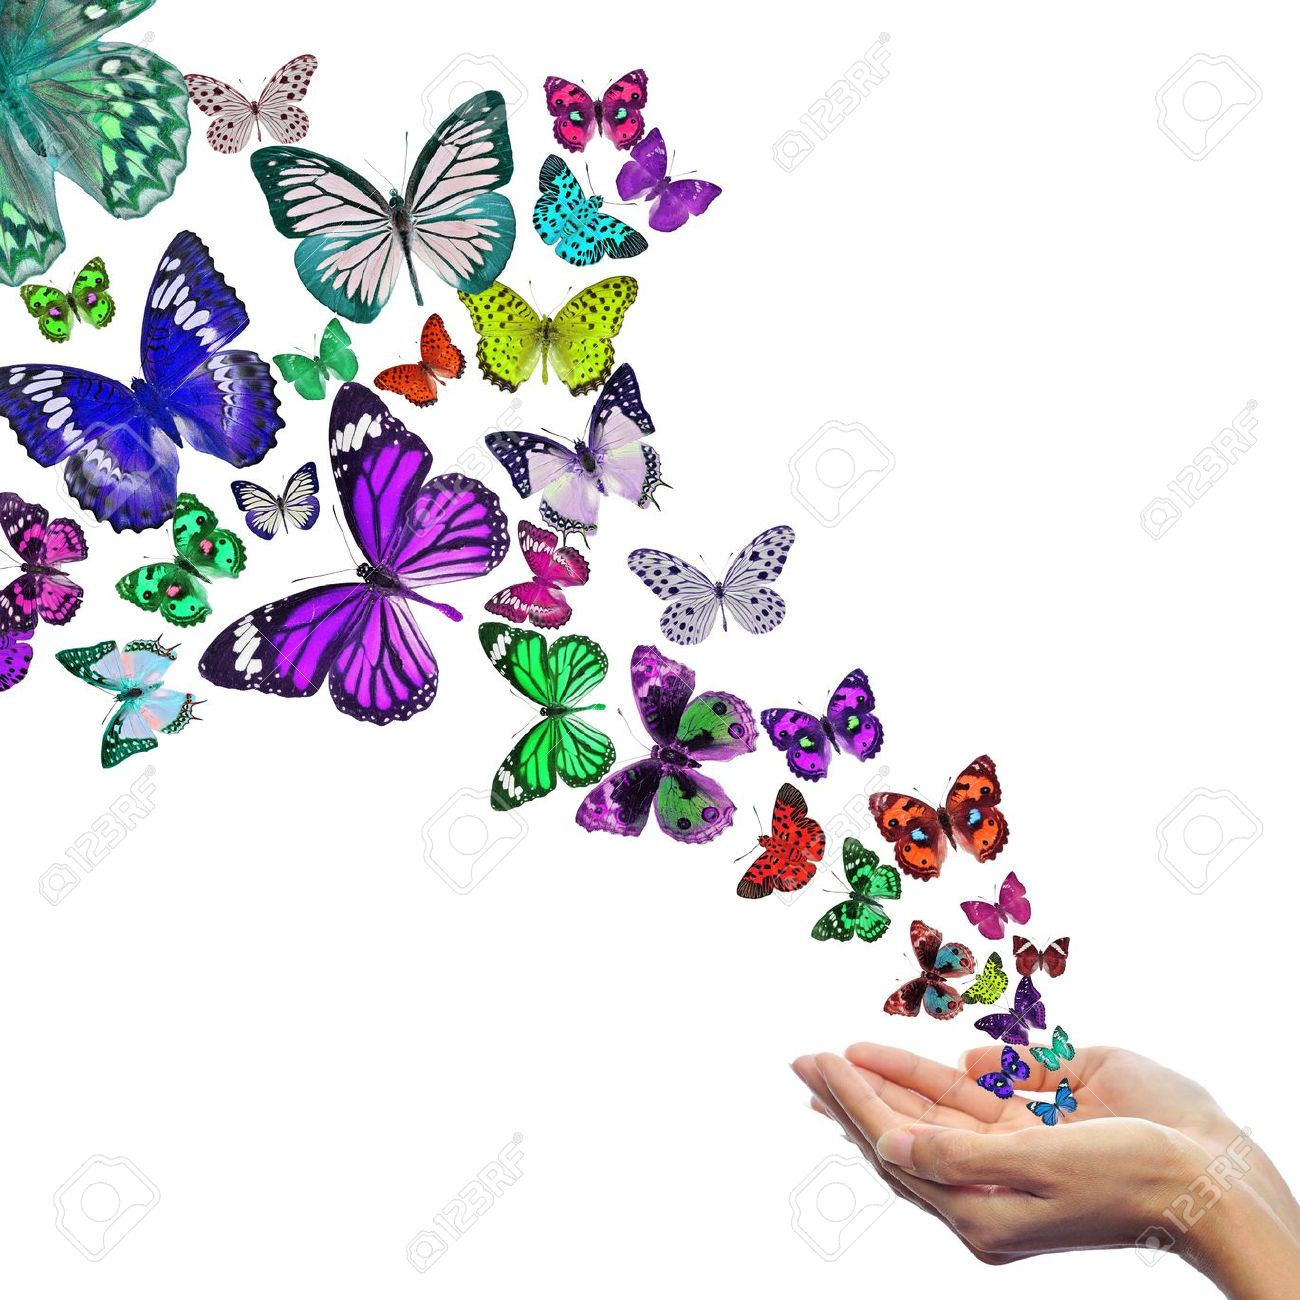 hand releasing butterflies images u0026 stock pictures royalty free